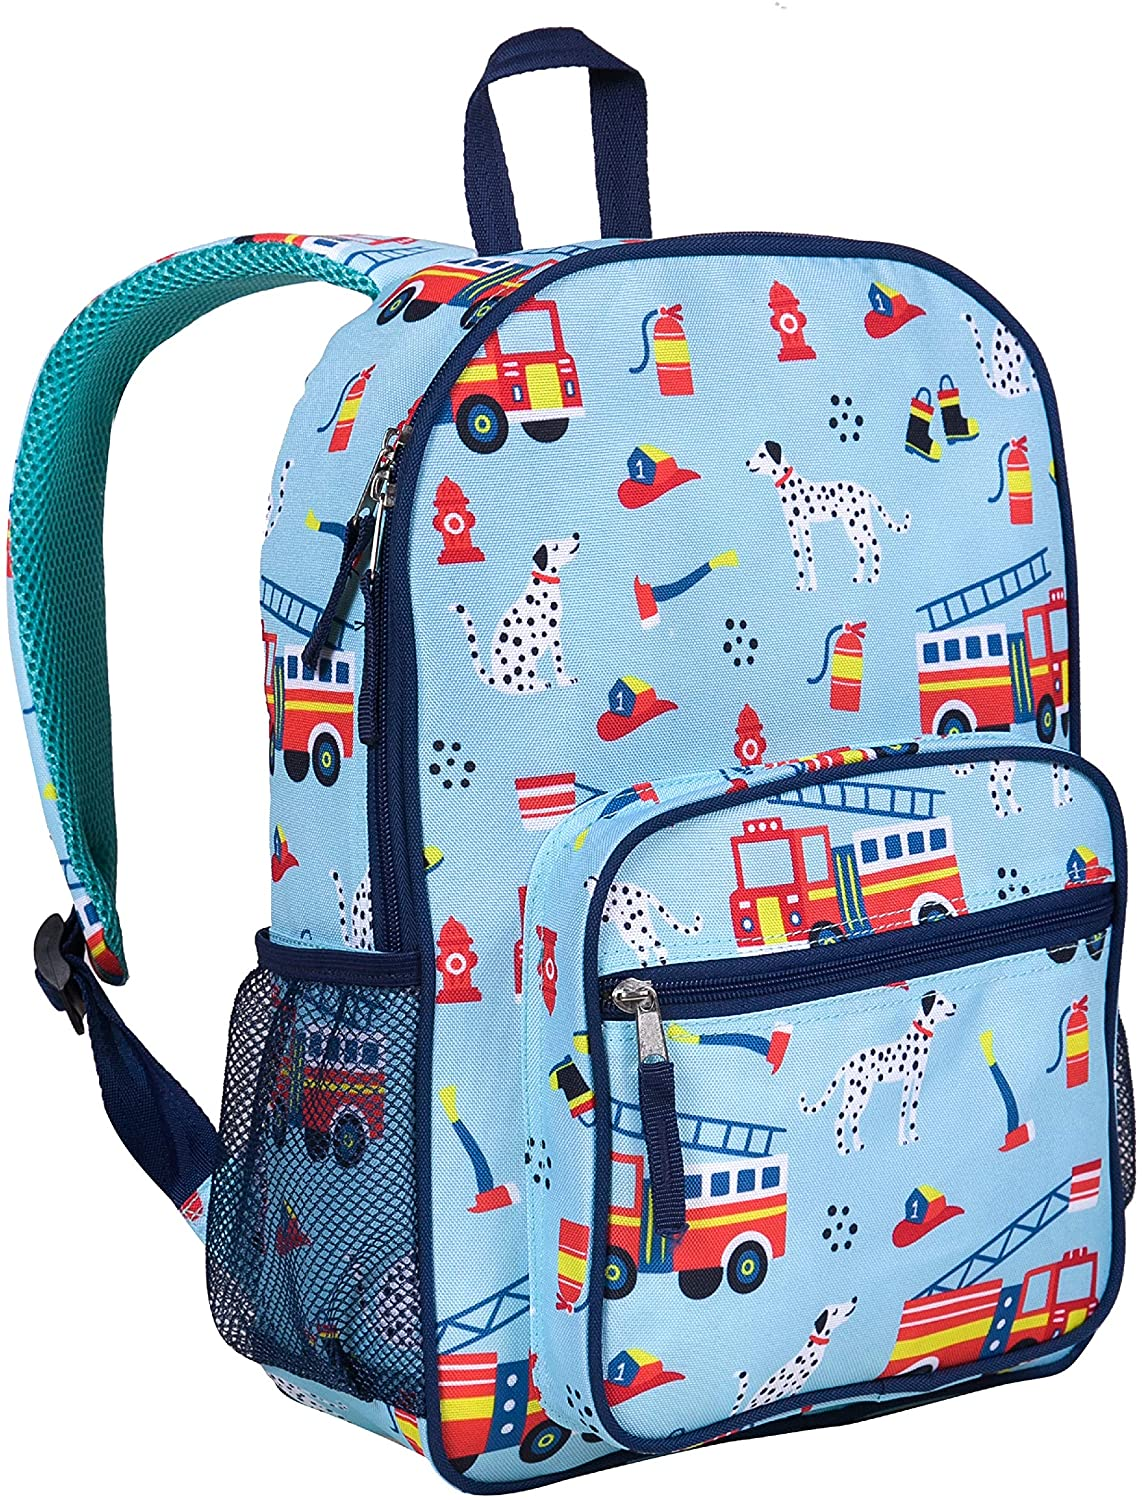 Wildkin Kids Everyday Backpack for Boys and Girls, Ideal for Size for Preschool, Kindergarten & Elementary, Kid Backpacks Measures 14.5 x 10.75 x 3.75 Inches, BPA-Free, Olive Kids (Firefighters)